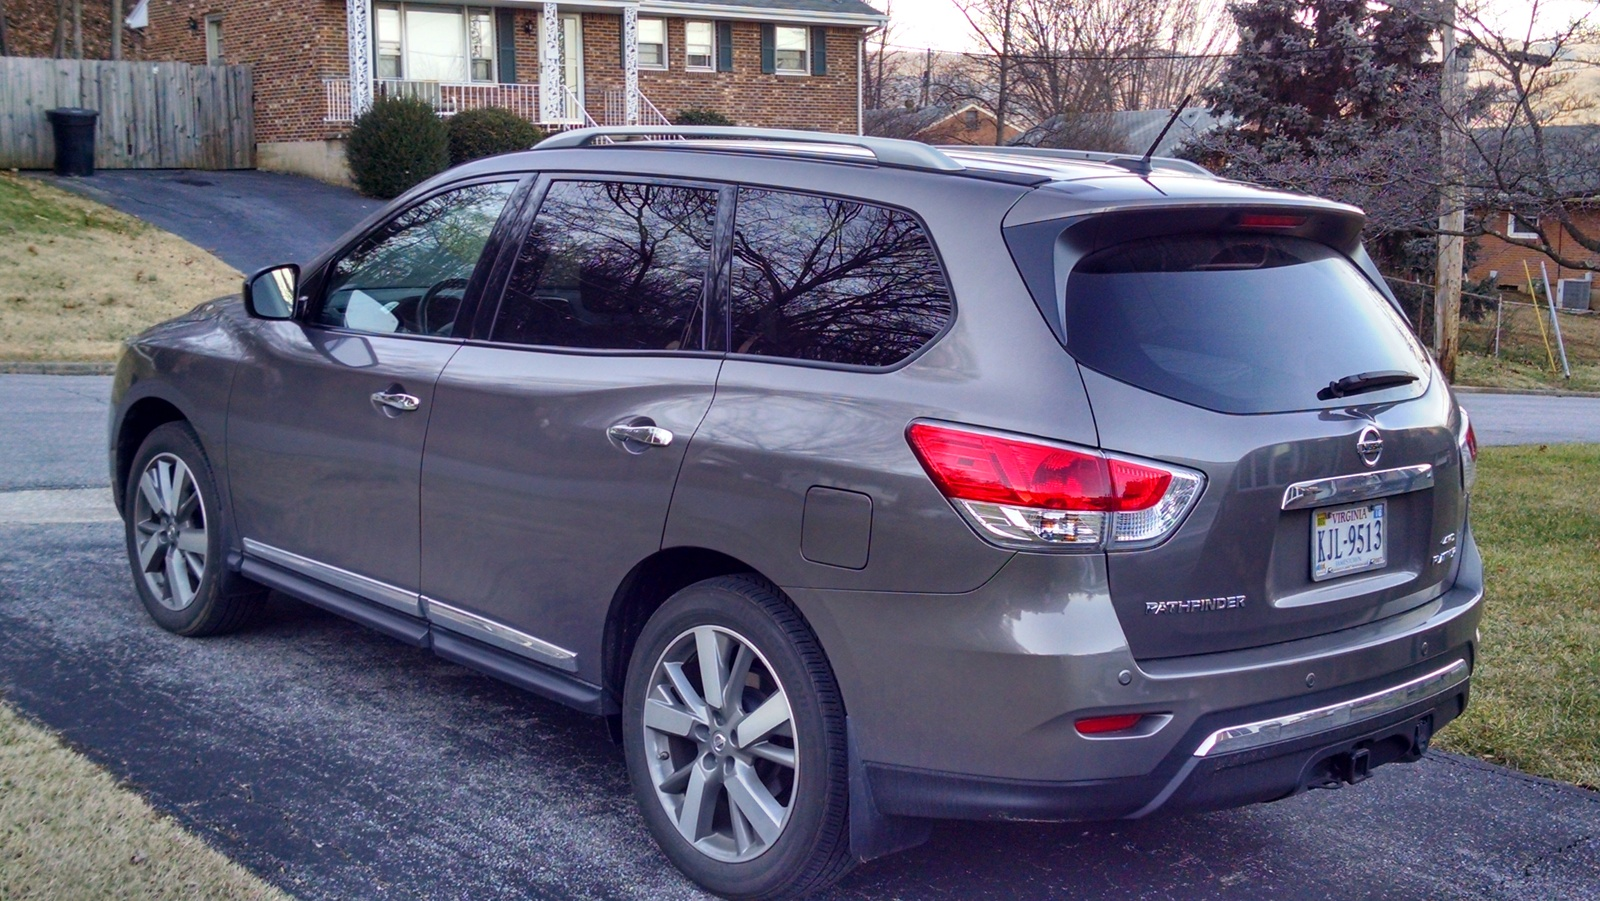 Are Midsized Suv Rental Cars Wd